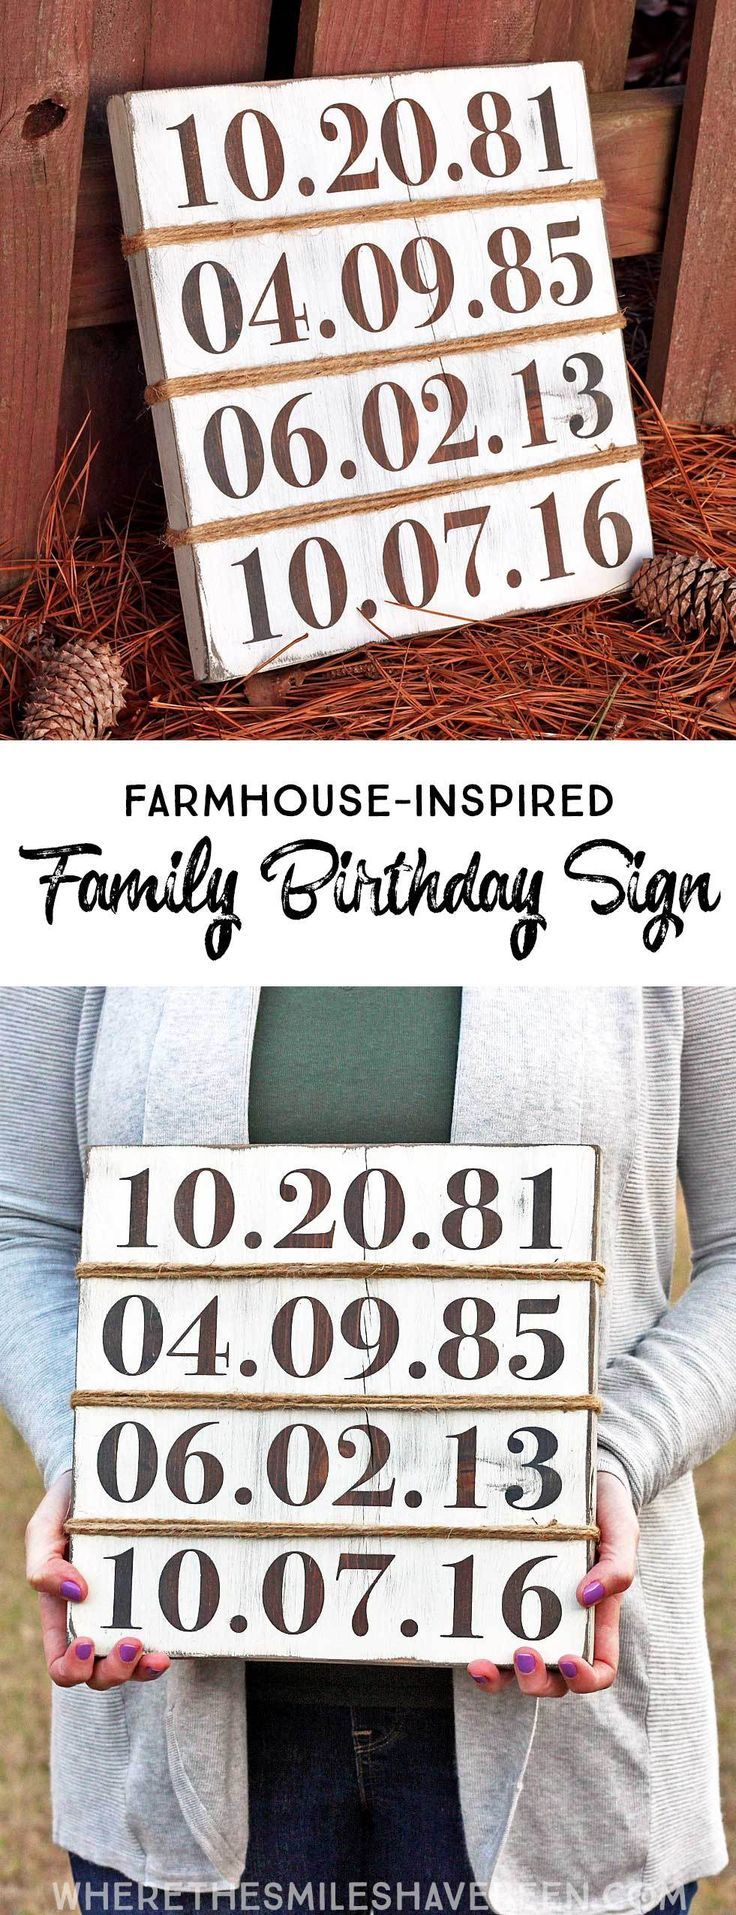 This is such a CUTE idea!  Display all of your family's birthdays with a personalized sign!  Rustic Farmhouse-Inspired Family Birthday Sign | Where The Smiles Have Been